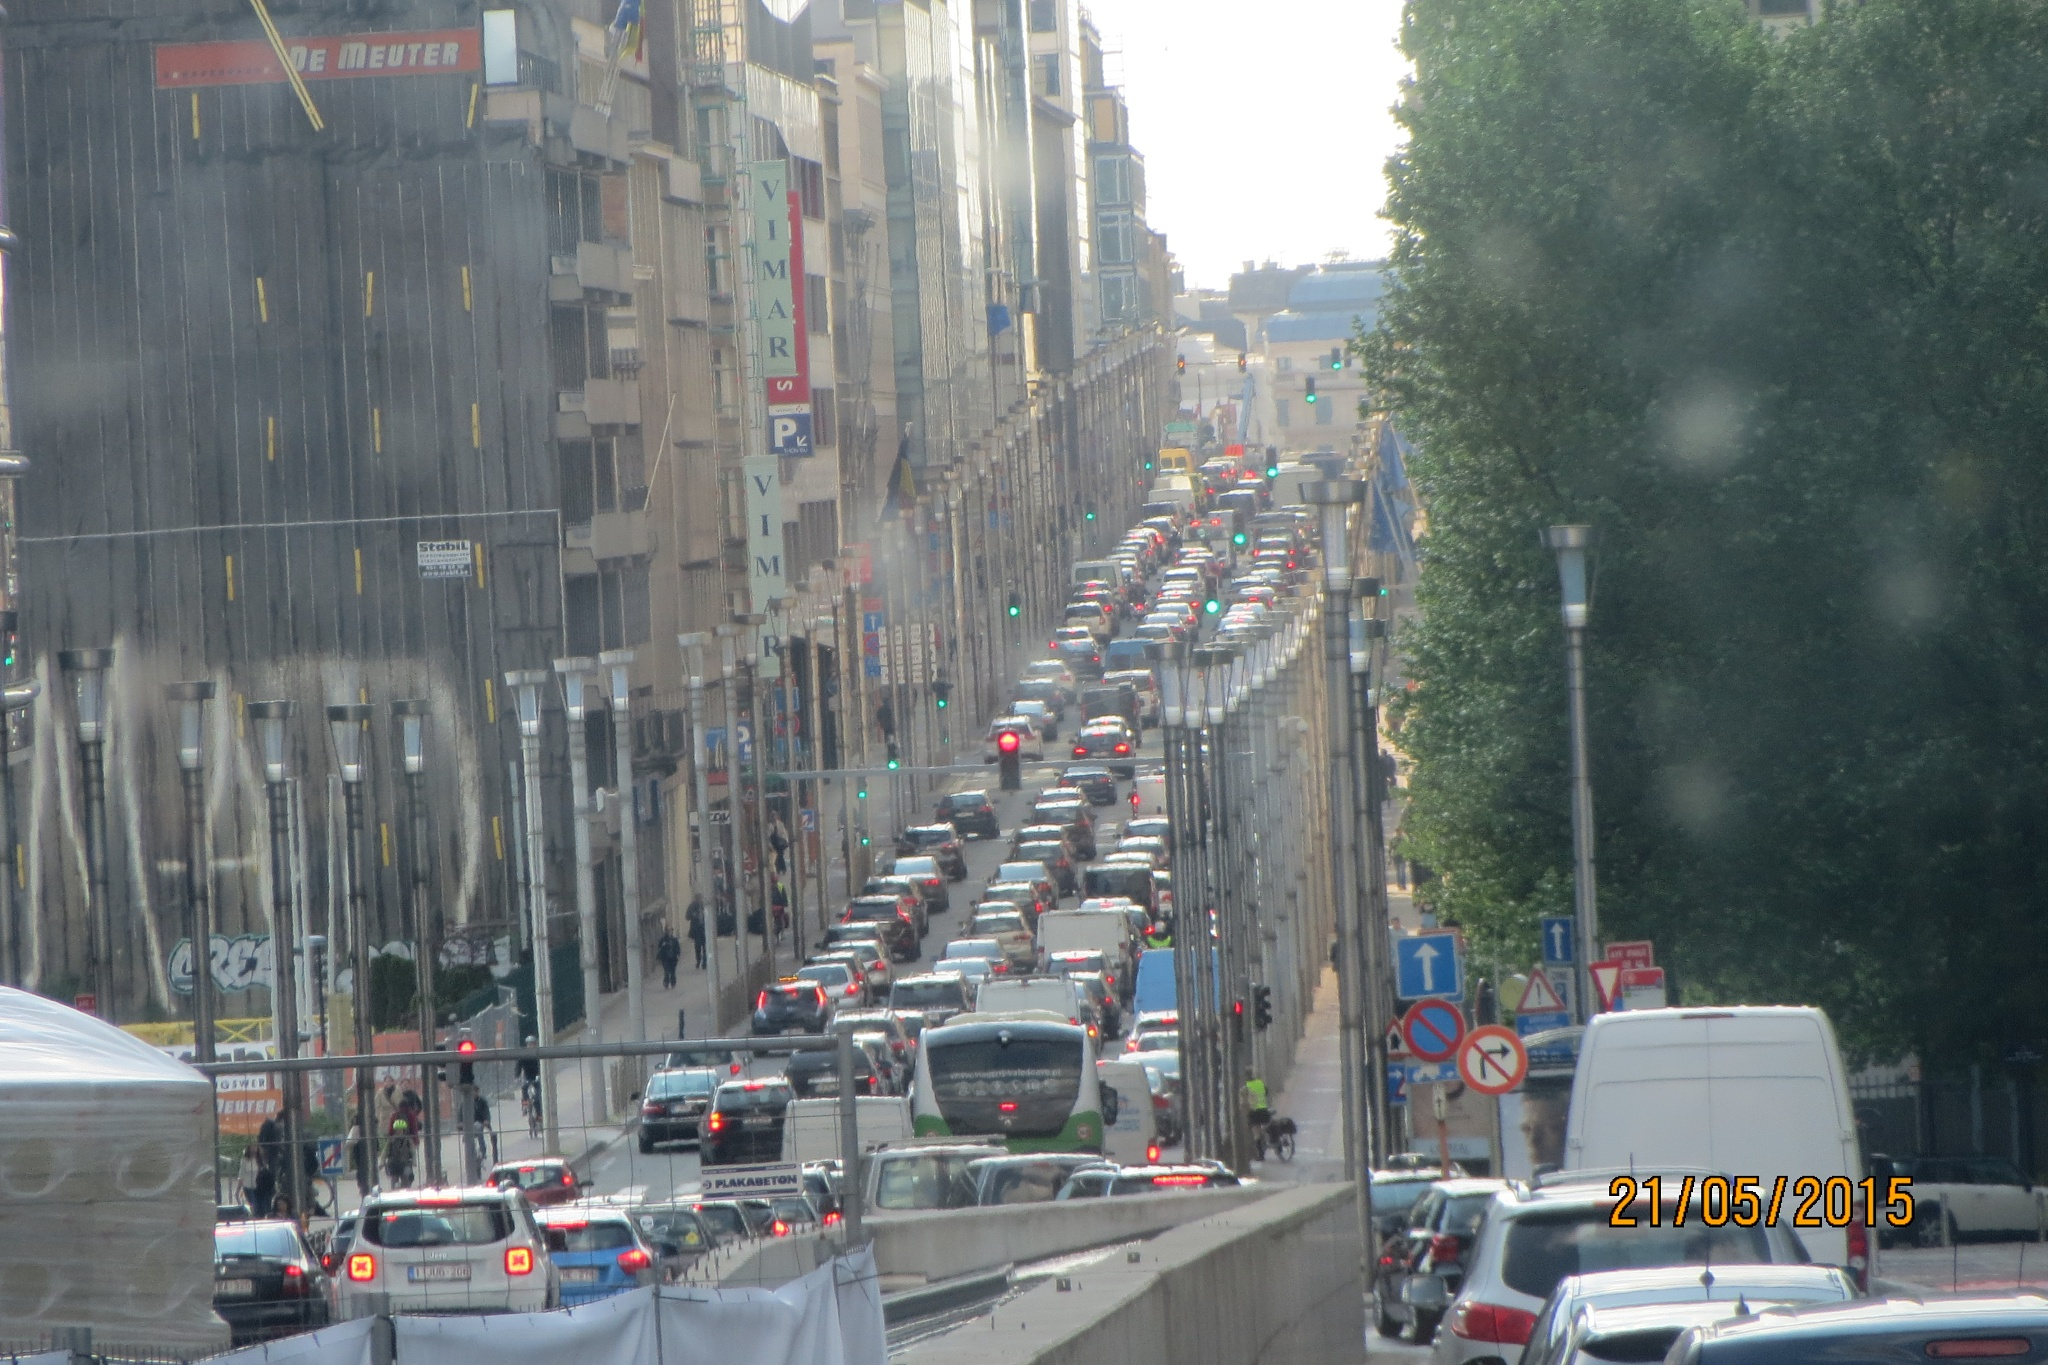 a small trafic jam. by eapenthomas2